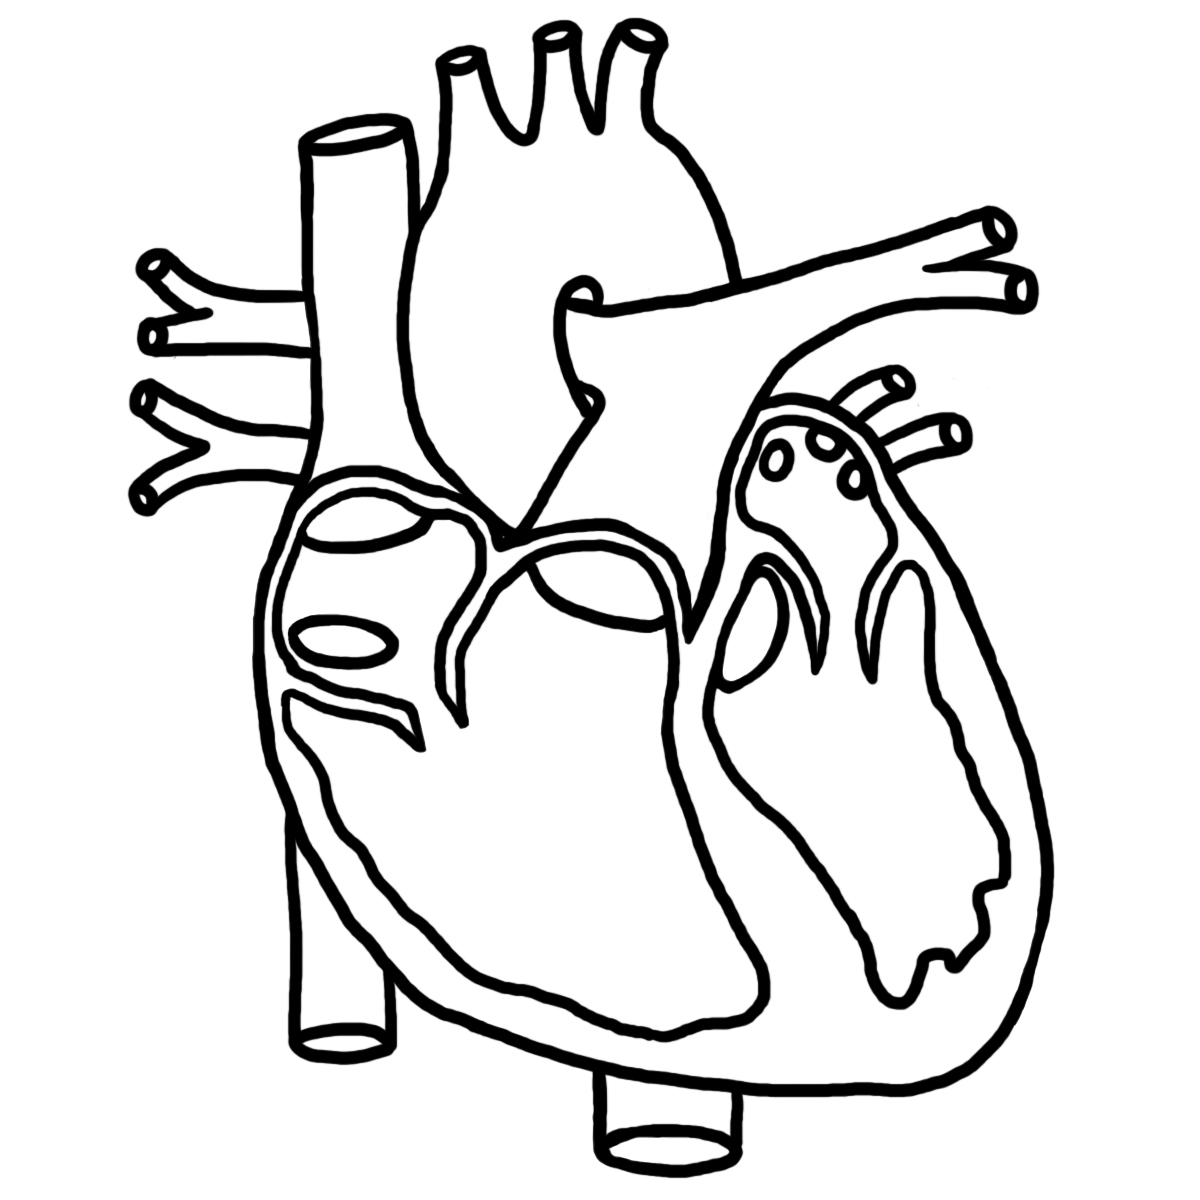 Human Heart Diagram For Kids - ClipArt Best - ClipArt Best